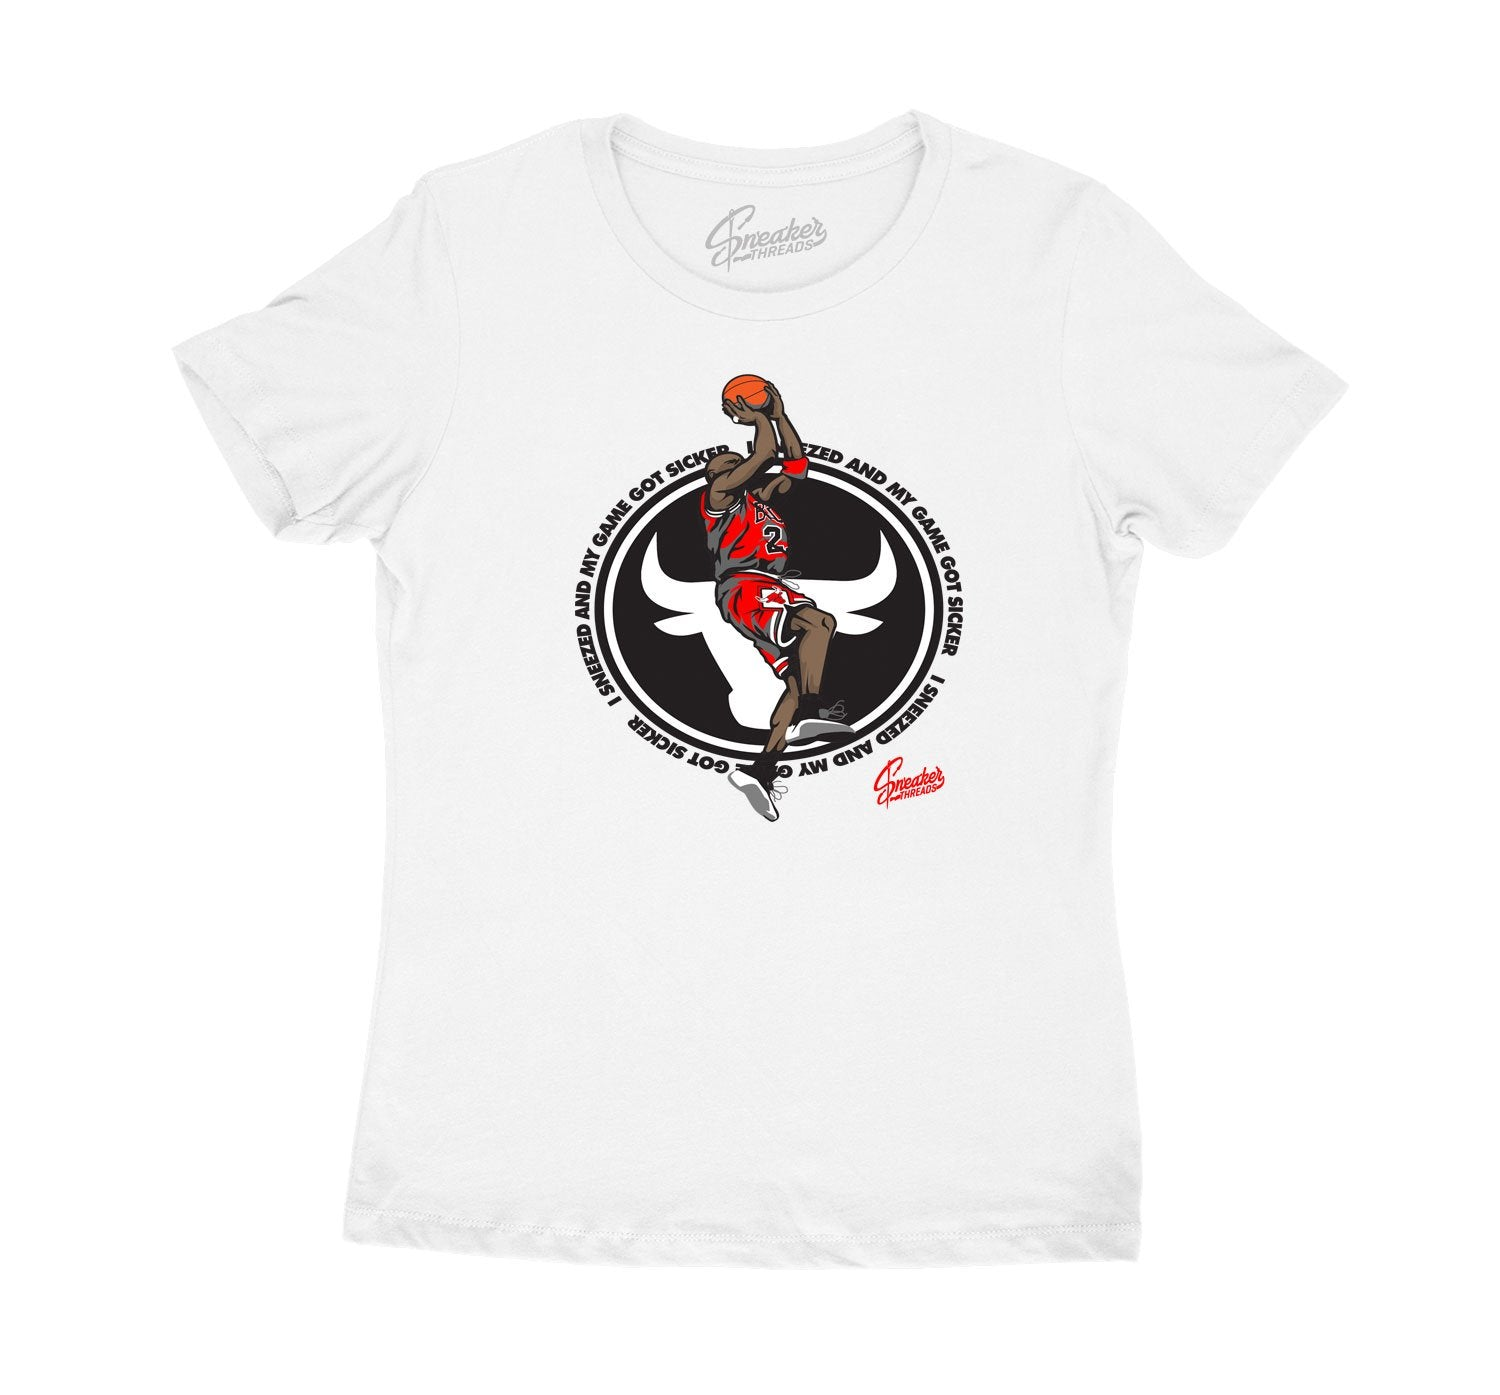 Womens jordan 12 dark grey sneaker tees match retro 12s shoes.